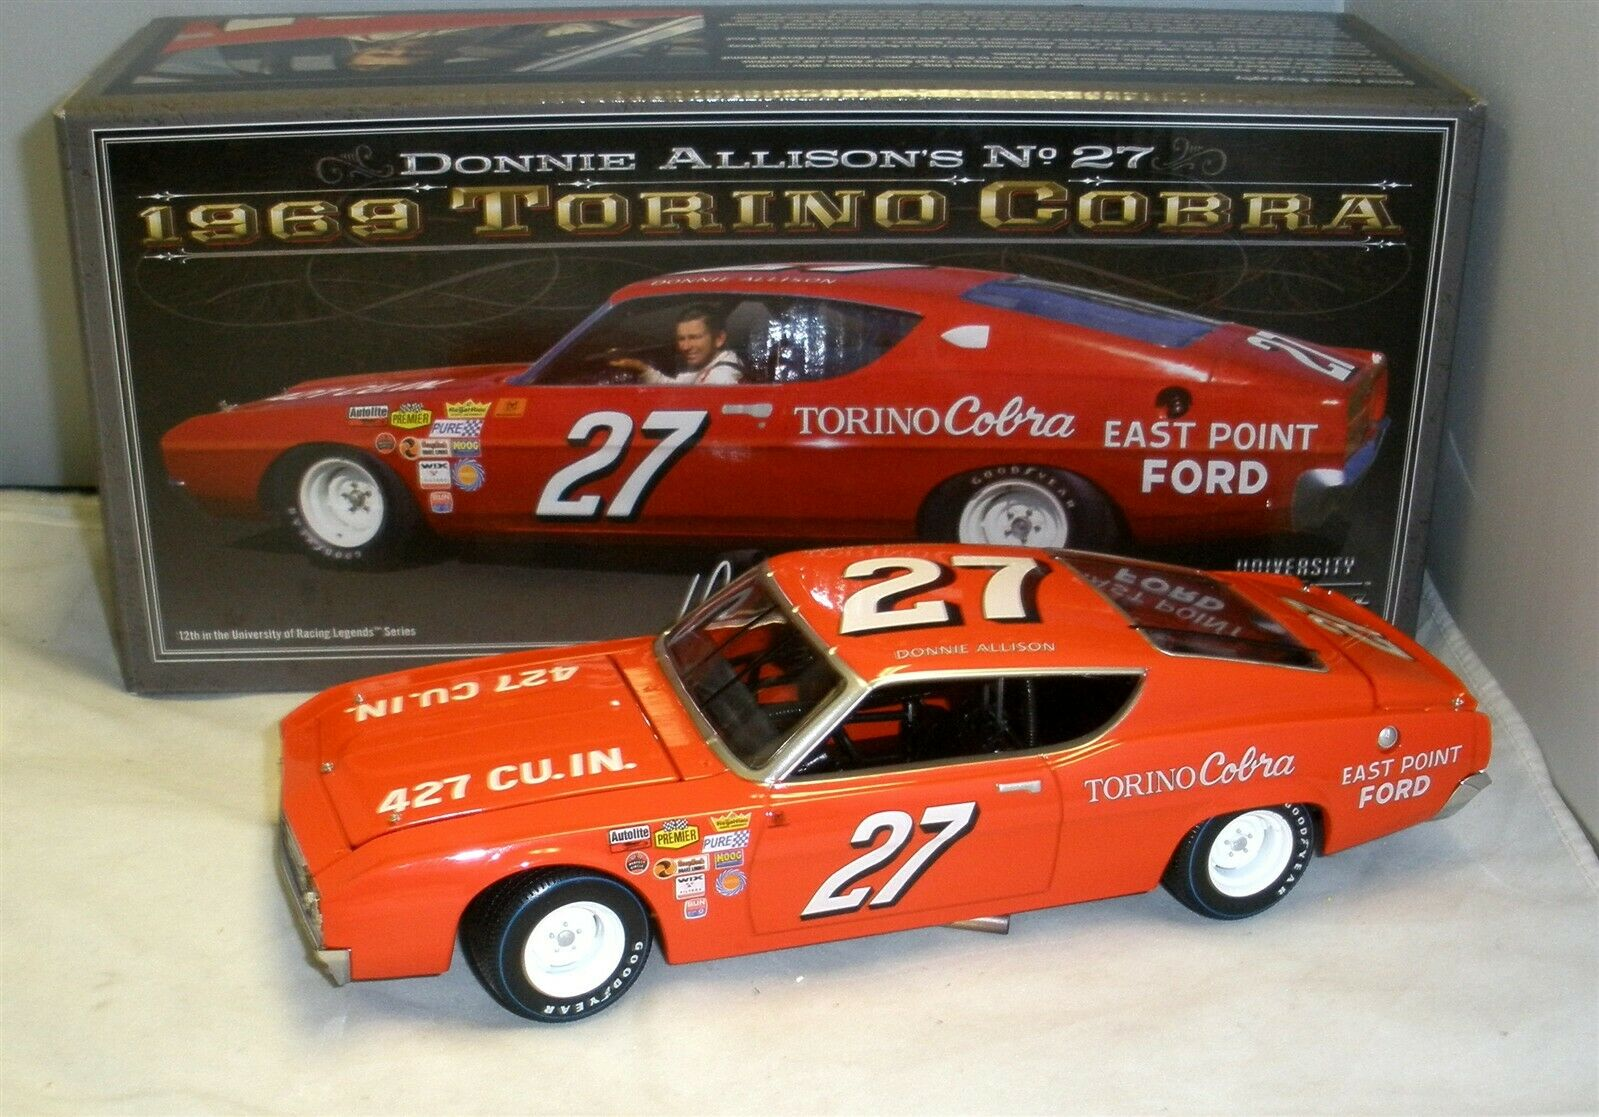 servicio honesto 1 24 University of Racing 1969    27 Ford Torino Cobra Donnie Allison Nuevo En Caja  60% de descuento